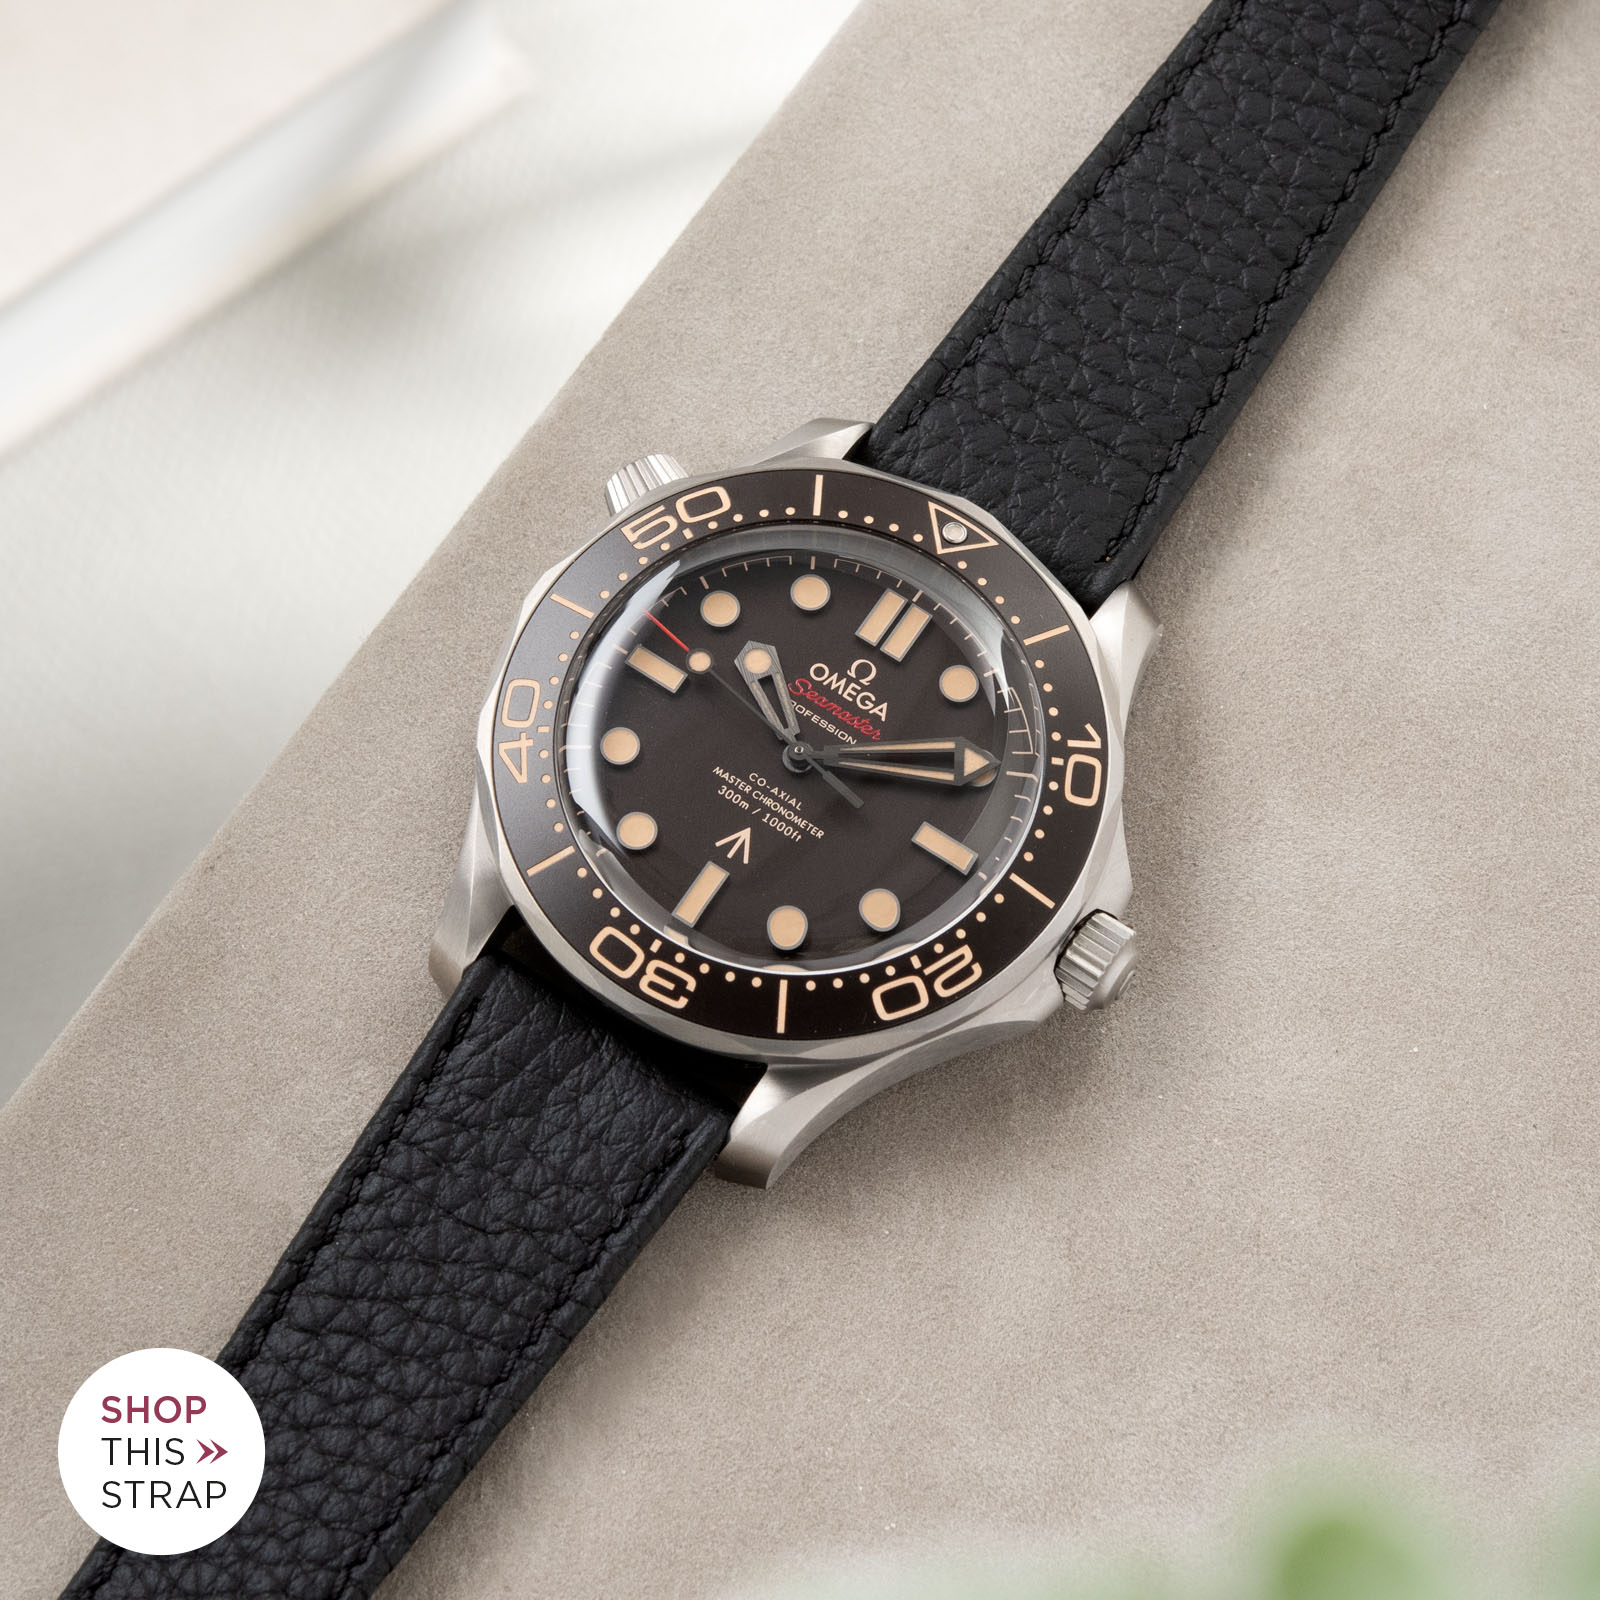 Bulang and Sons_Strapguide_Omega Seamaster_Taurillon Black Speedy Watch Strap